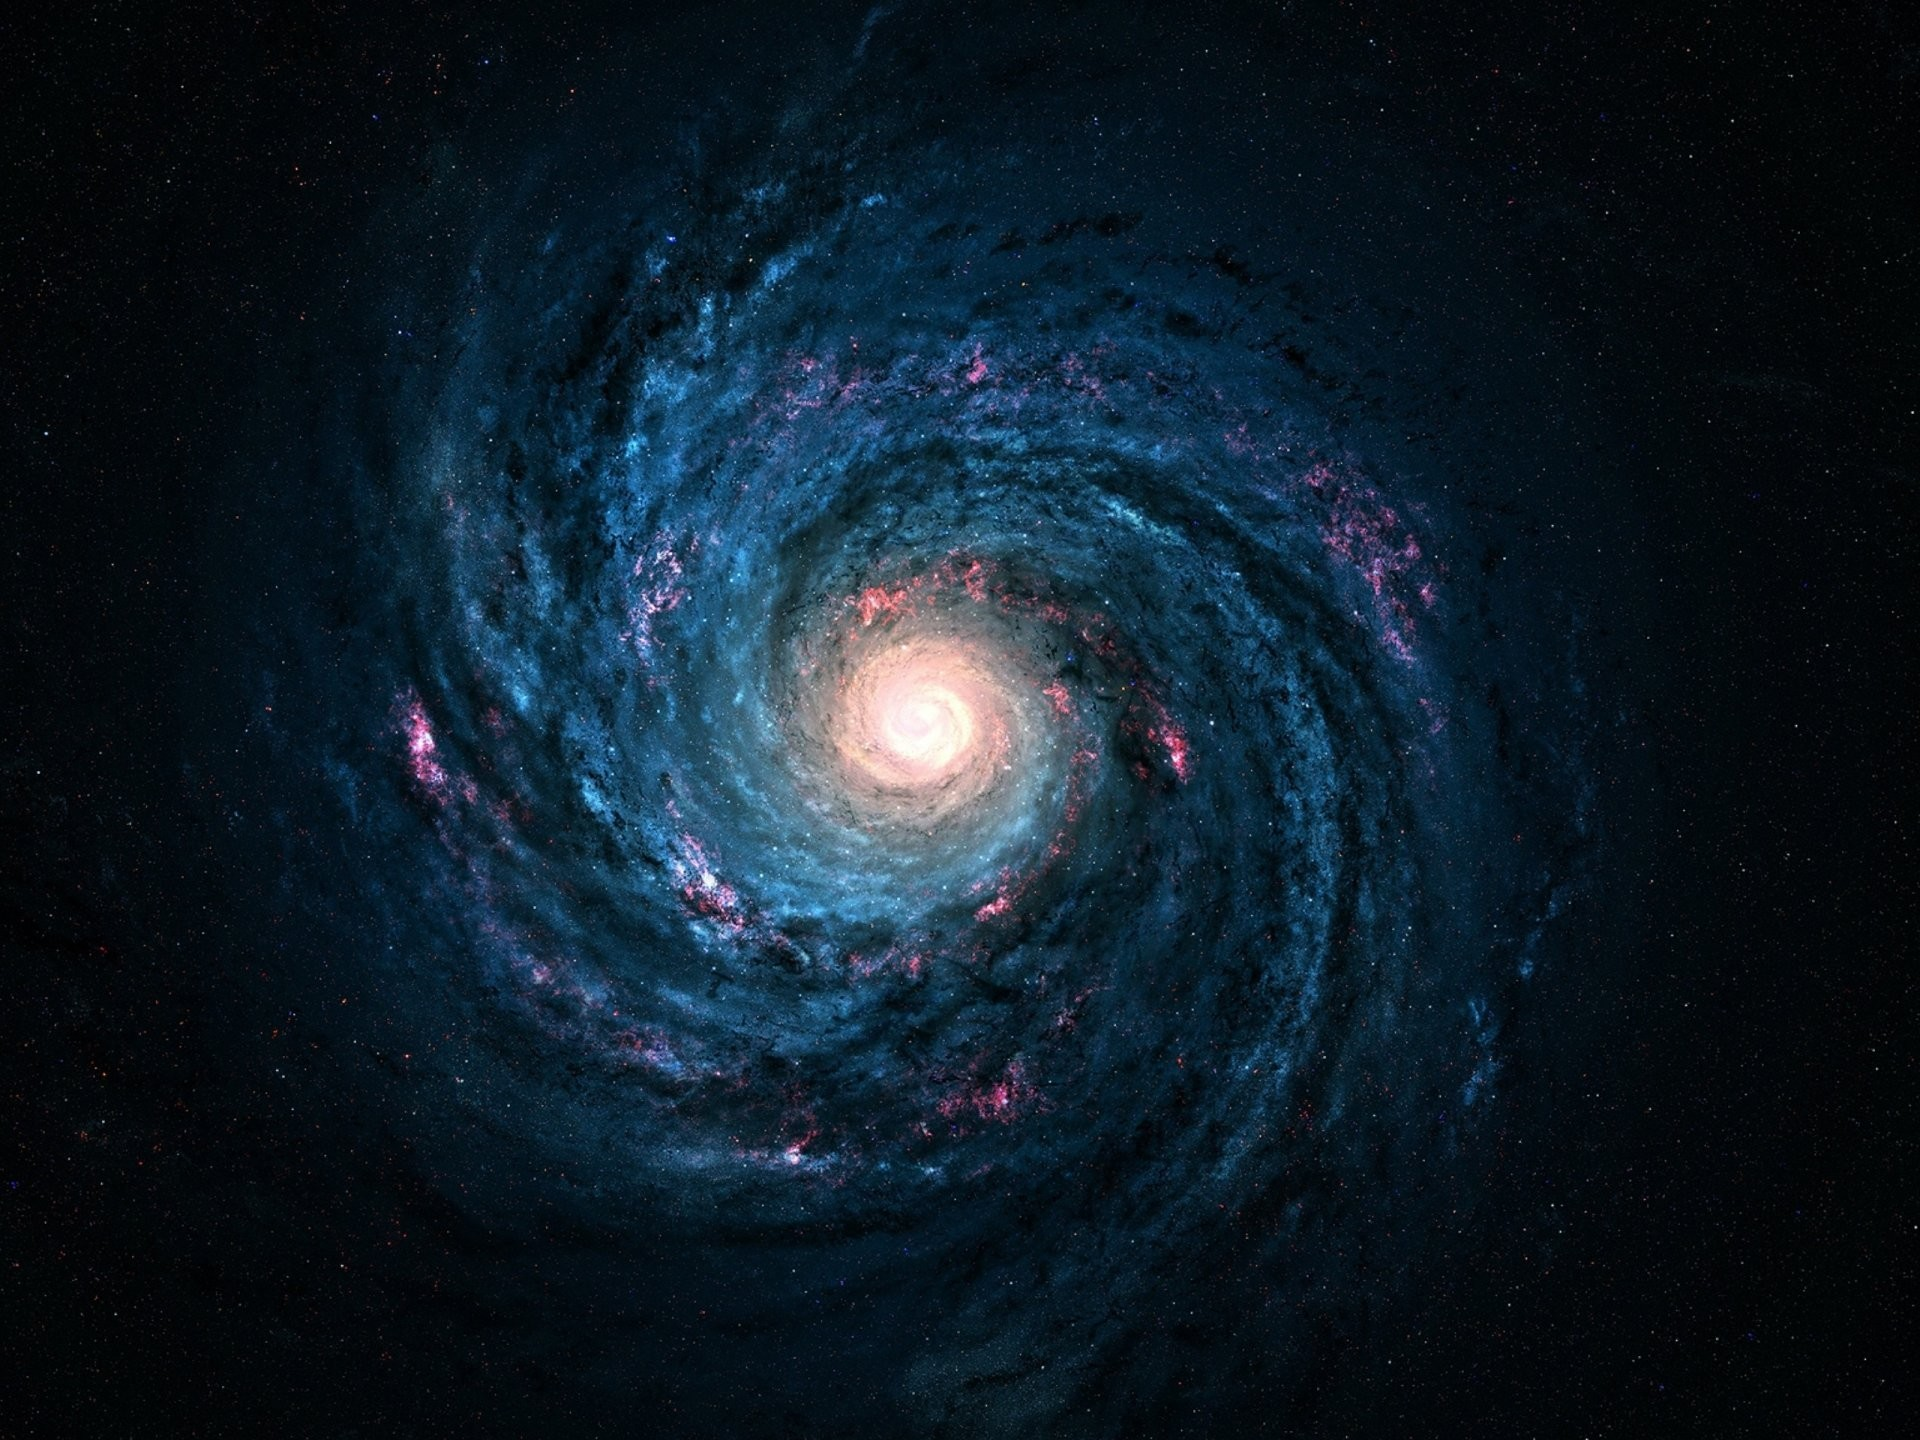 solemnity milky way galaxy stars eternity beautiful space wallpapers lights  blue & red deep space cosmos